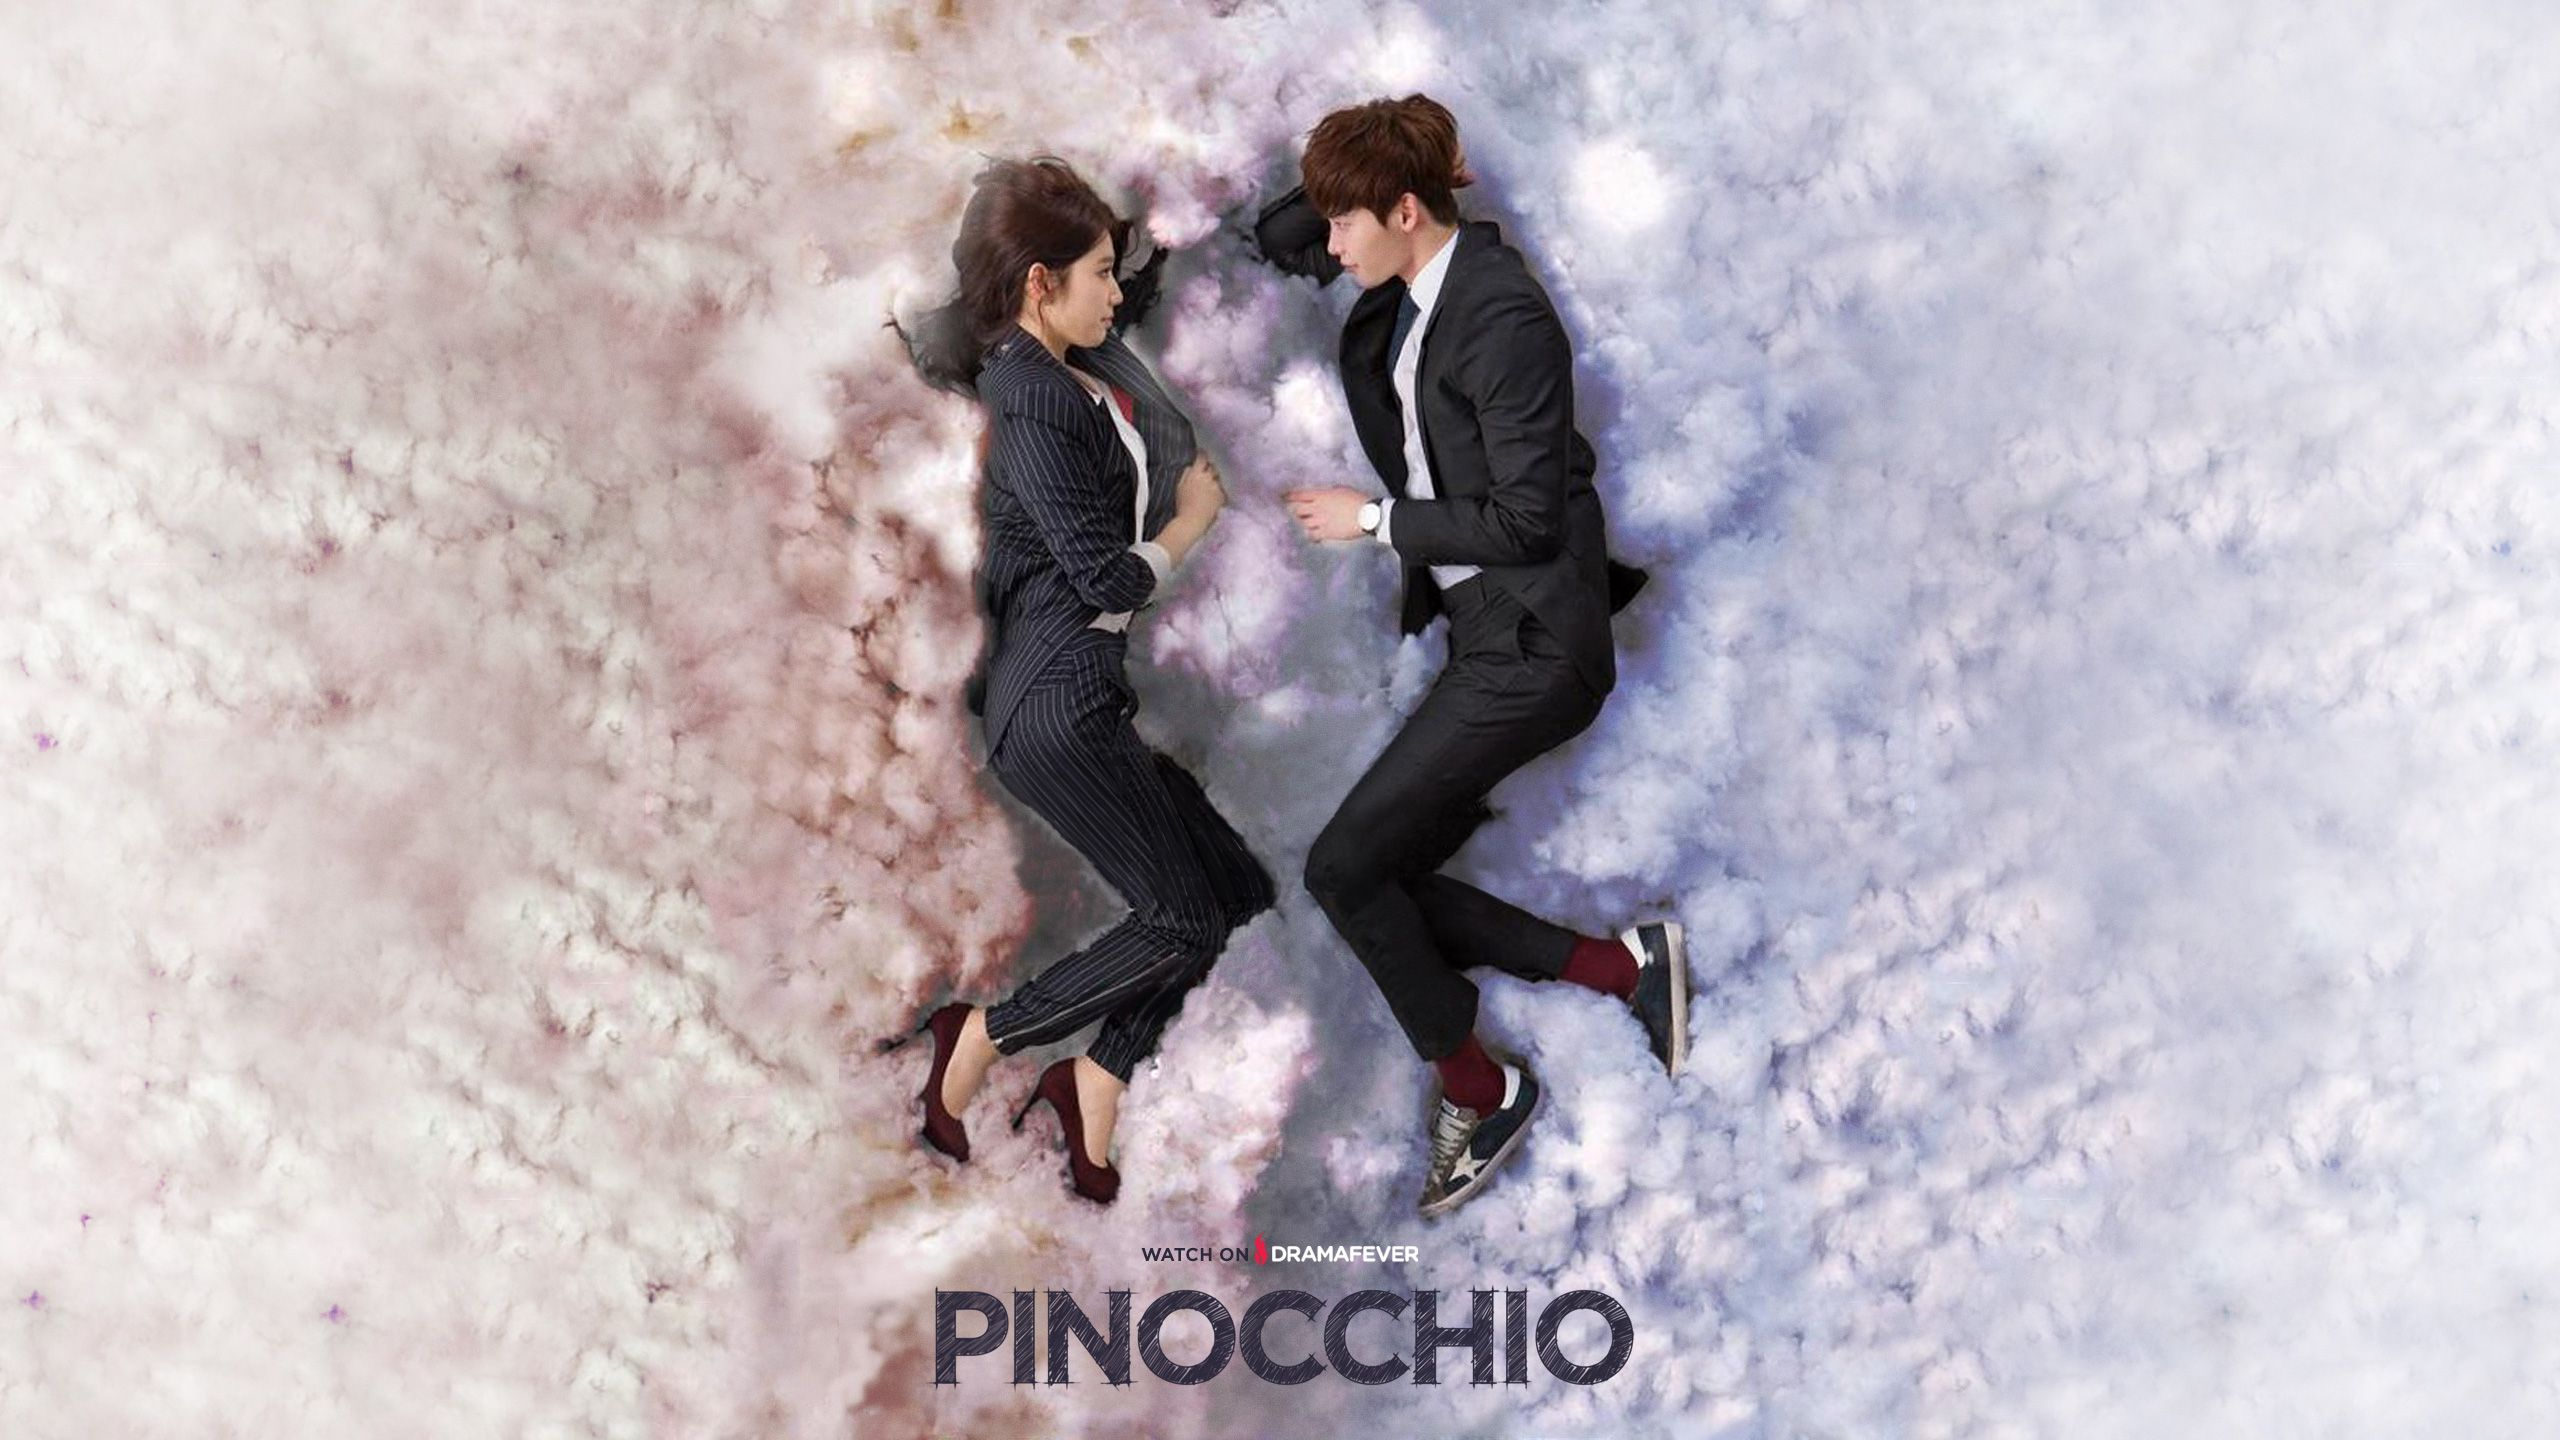 Download Pinocchio Wallpapers For Your Desktop Iphone Ipad And Android Korean Drama Pinocchio Drama Korea